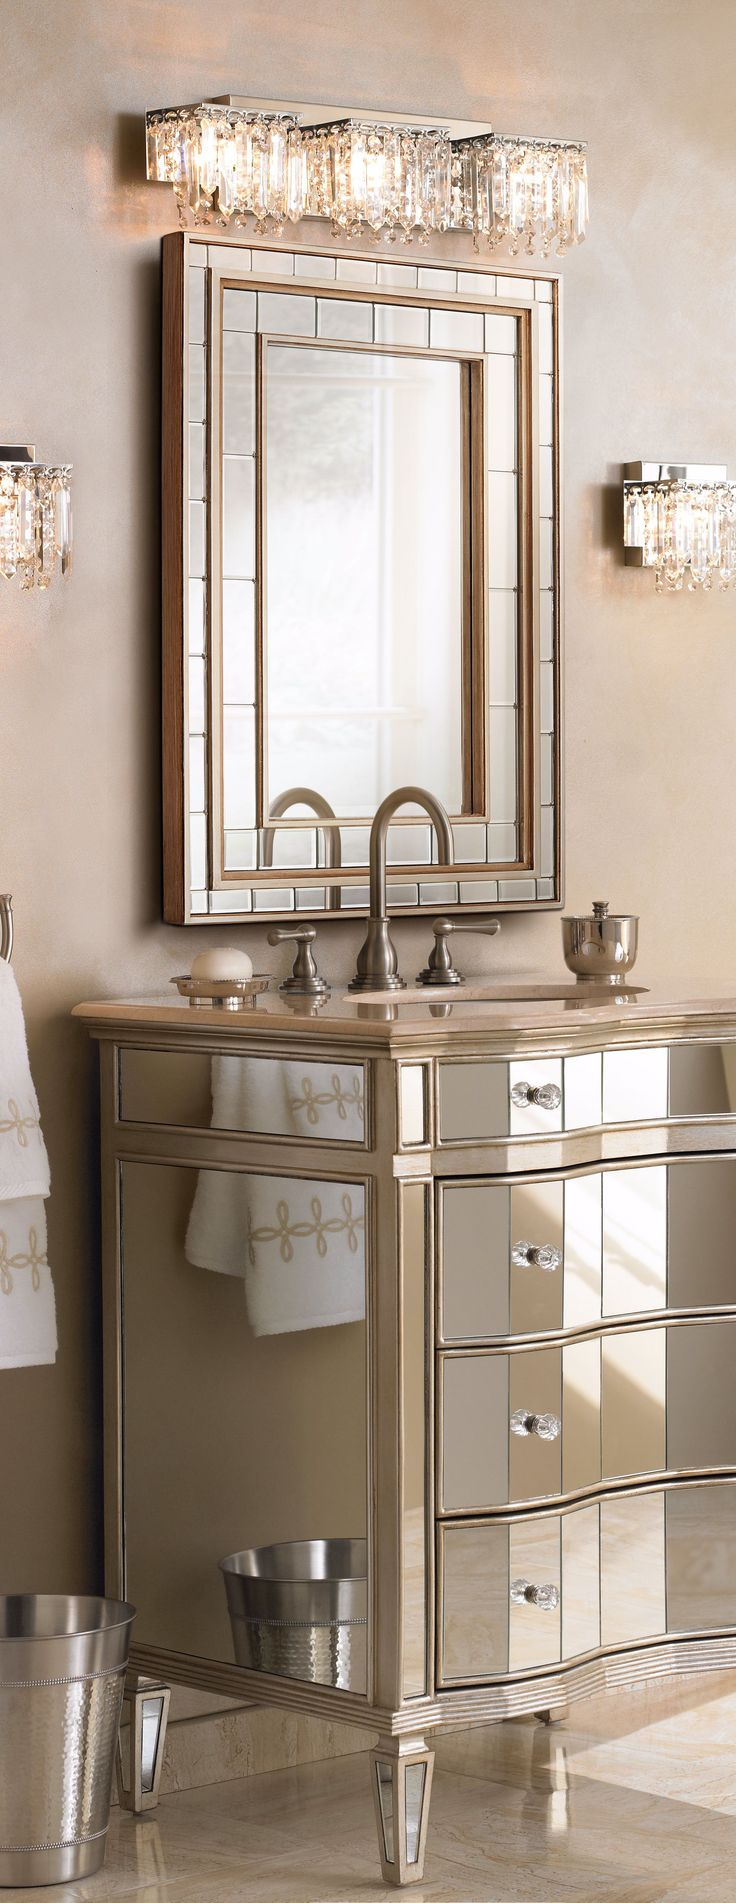 Sets bathroom vanity ari kitchen second - A Glamorous Bathroom With Plenty Of Mirrors And Mirrored Furniture Products Possini Euro Design